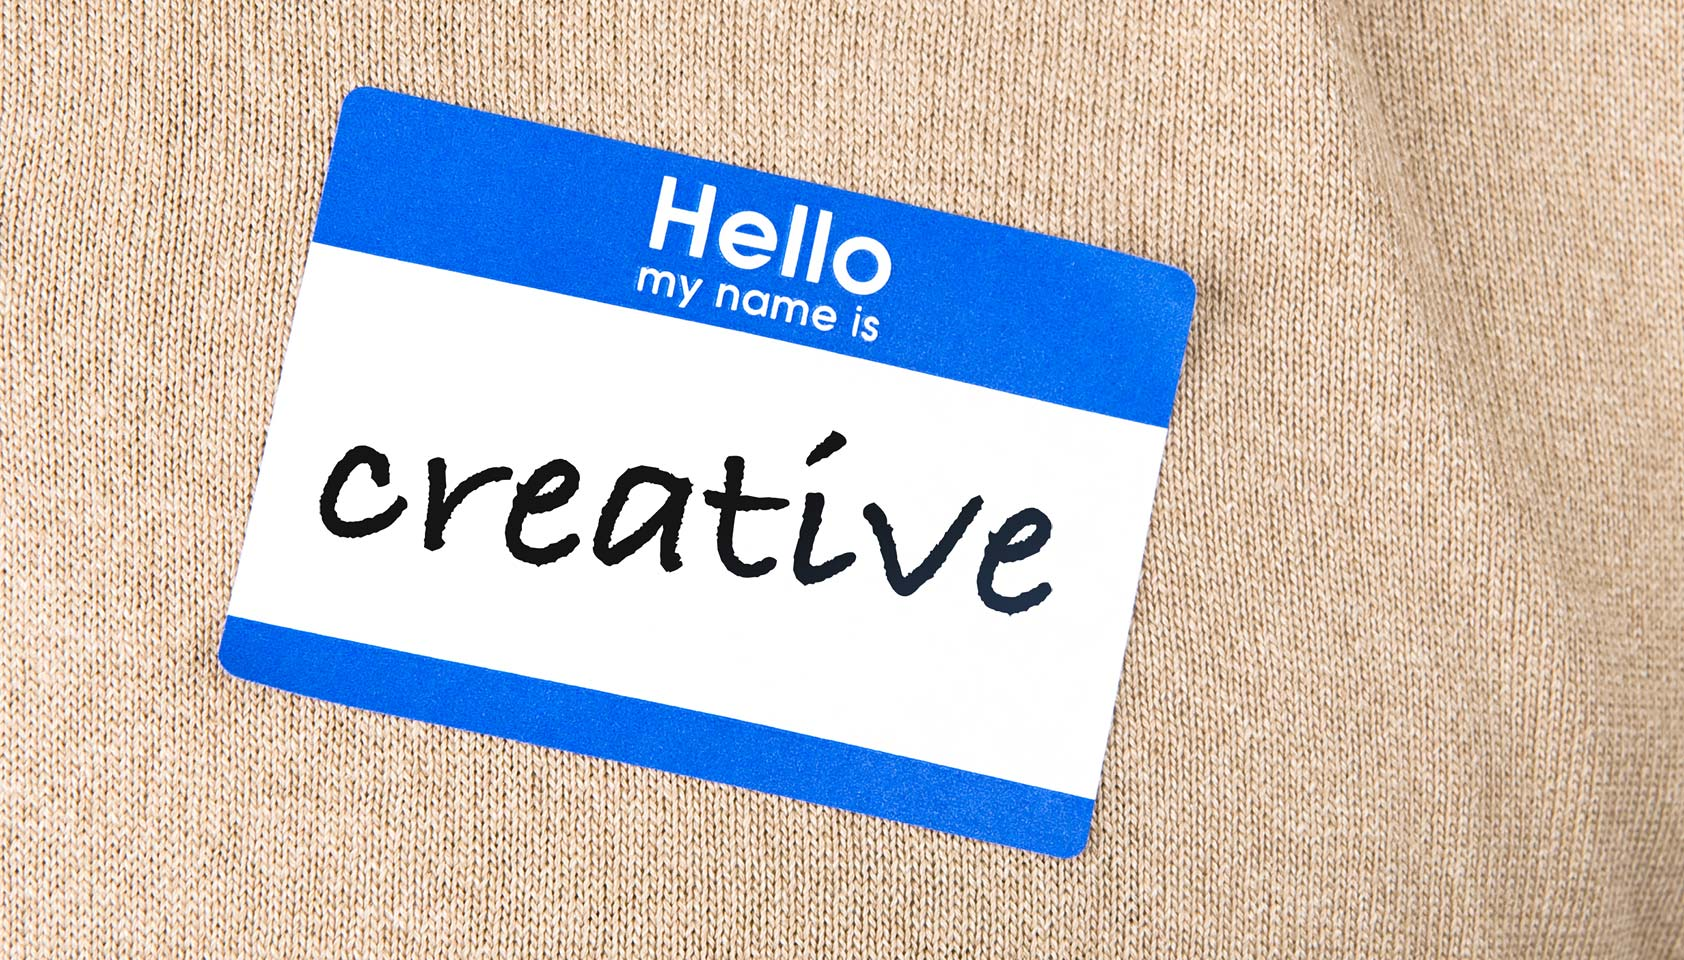 What's wrong with being creative?